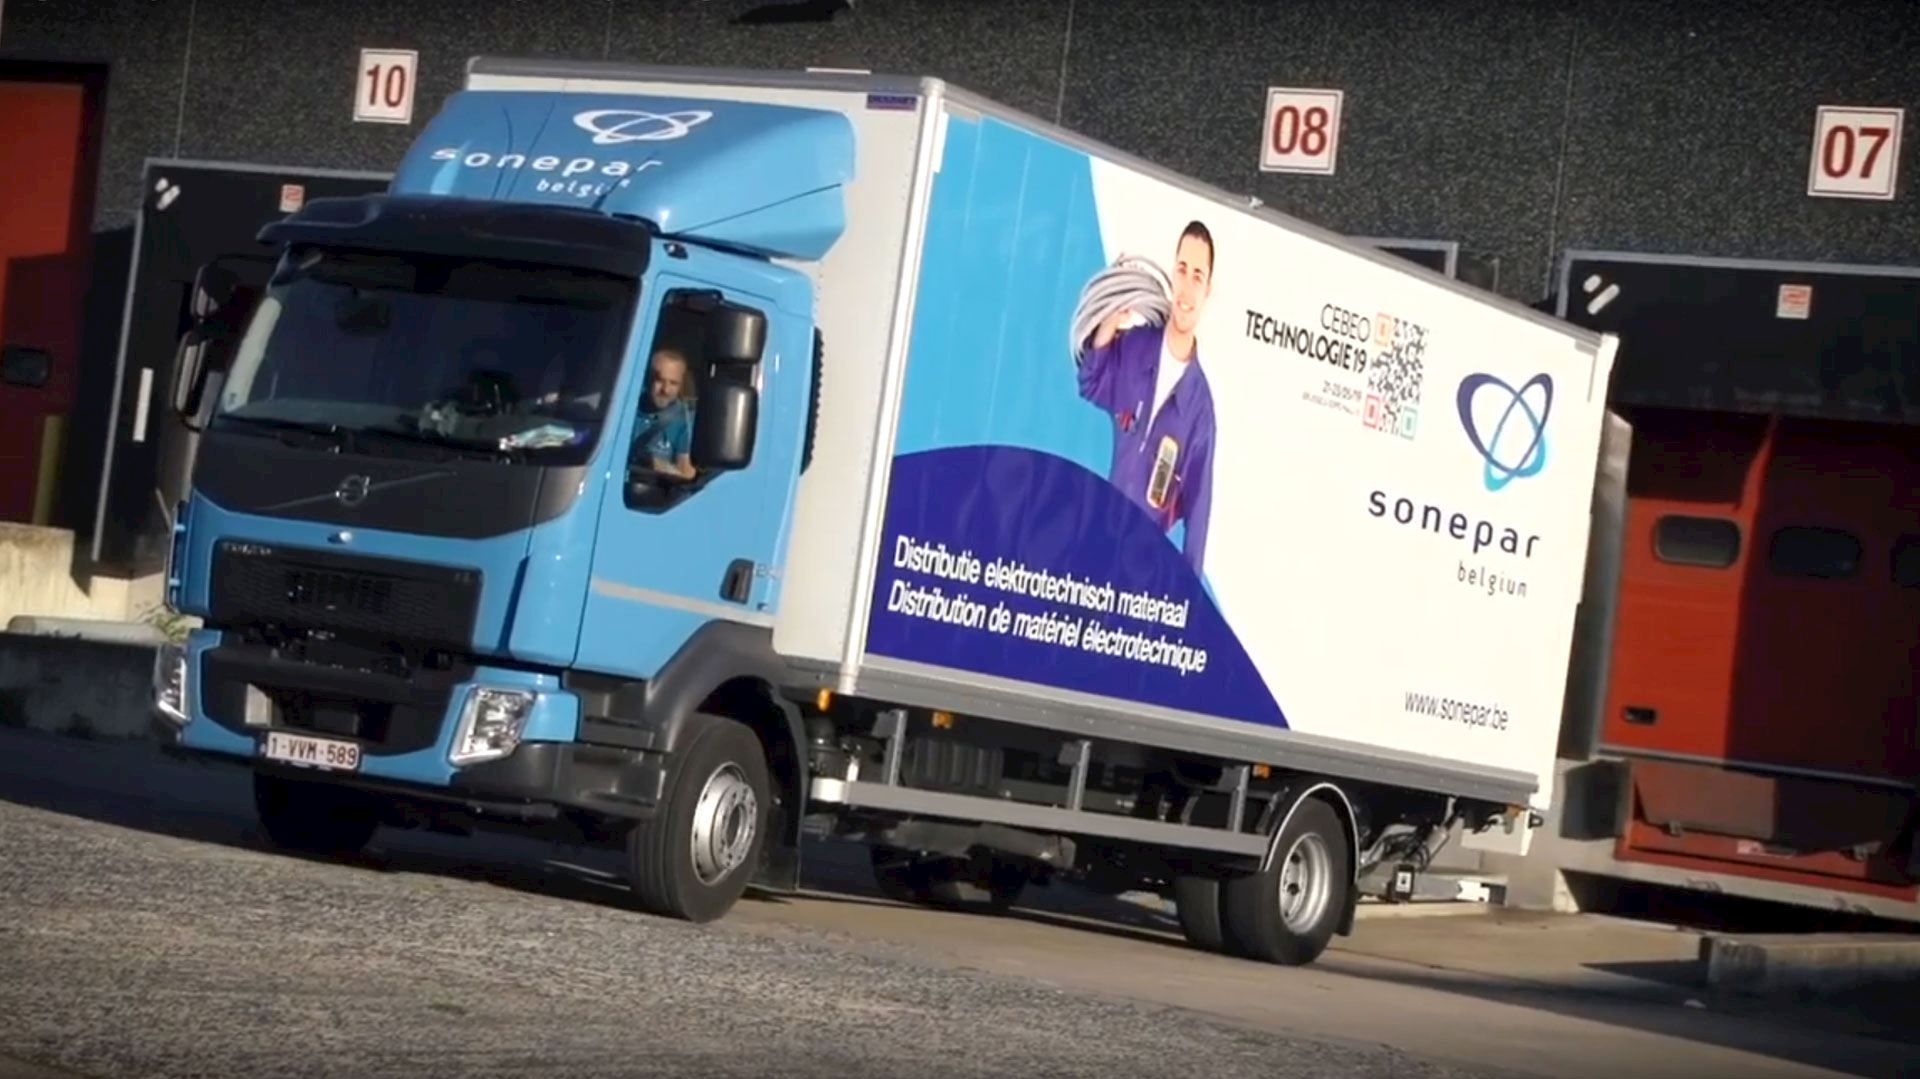 Sobe-Log | Transport et distribution par Sonepar Belgium (01:14)